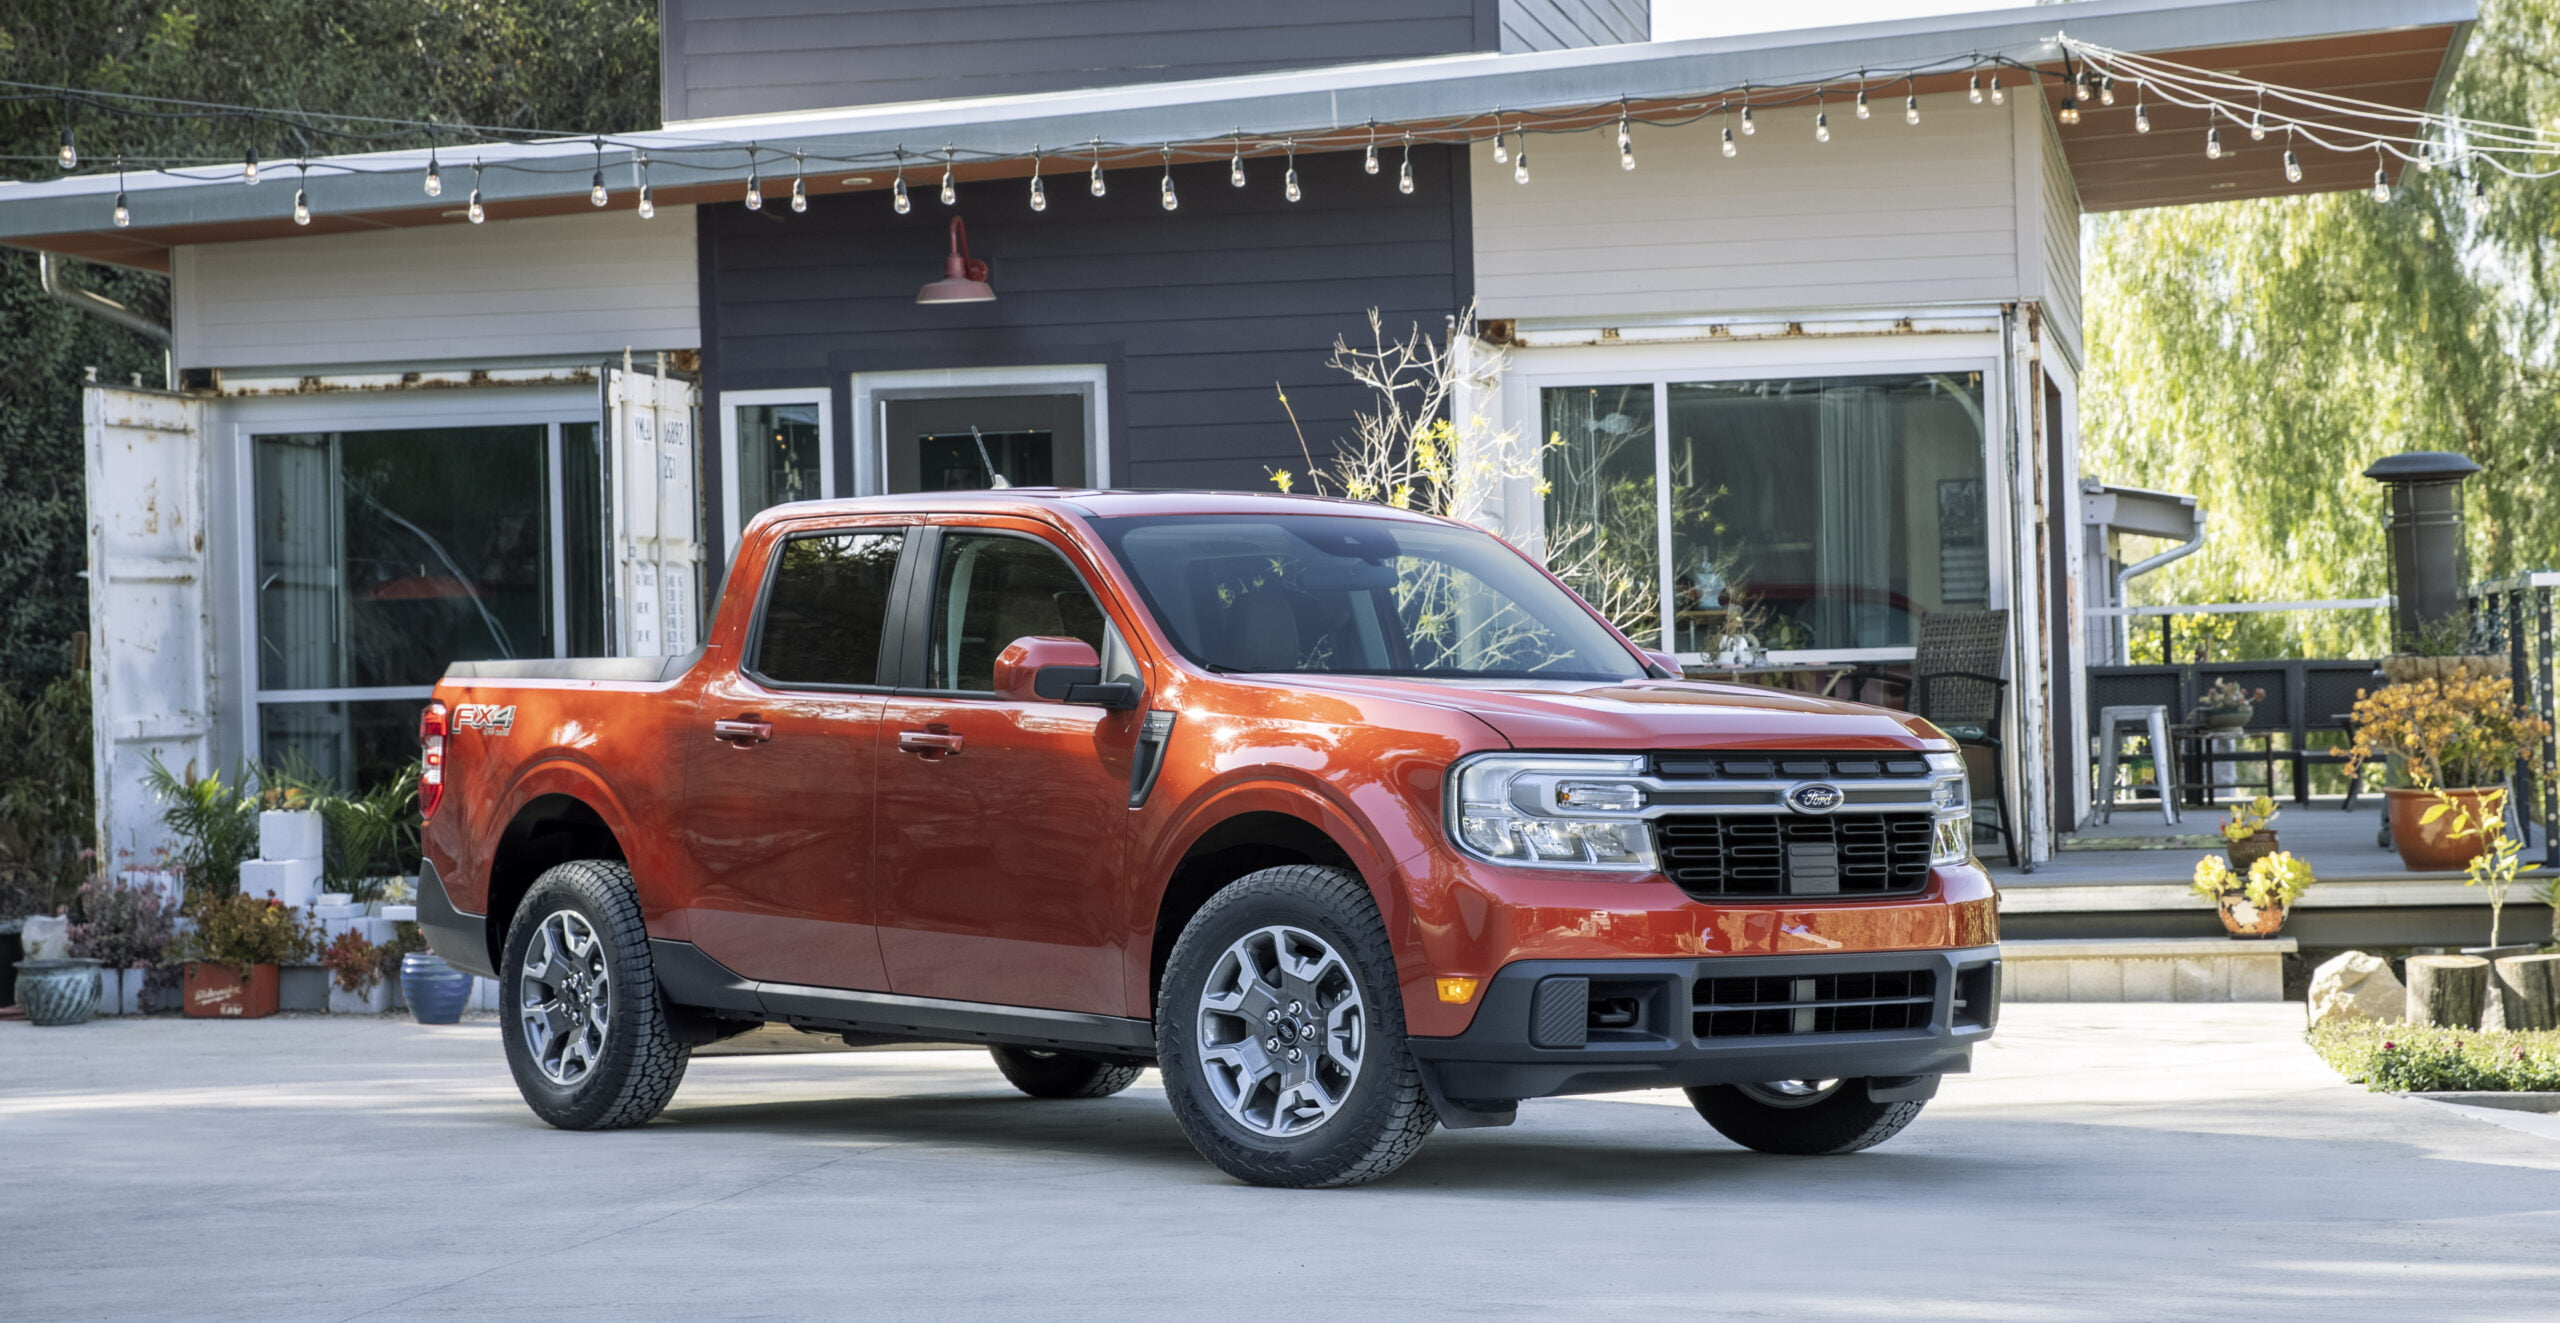 View of the 2022 Ford Maverick